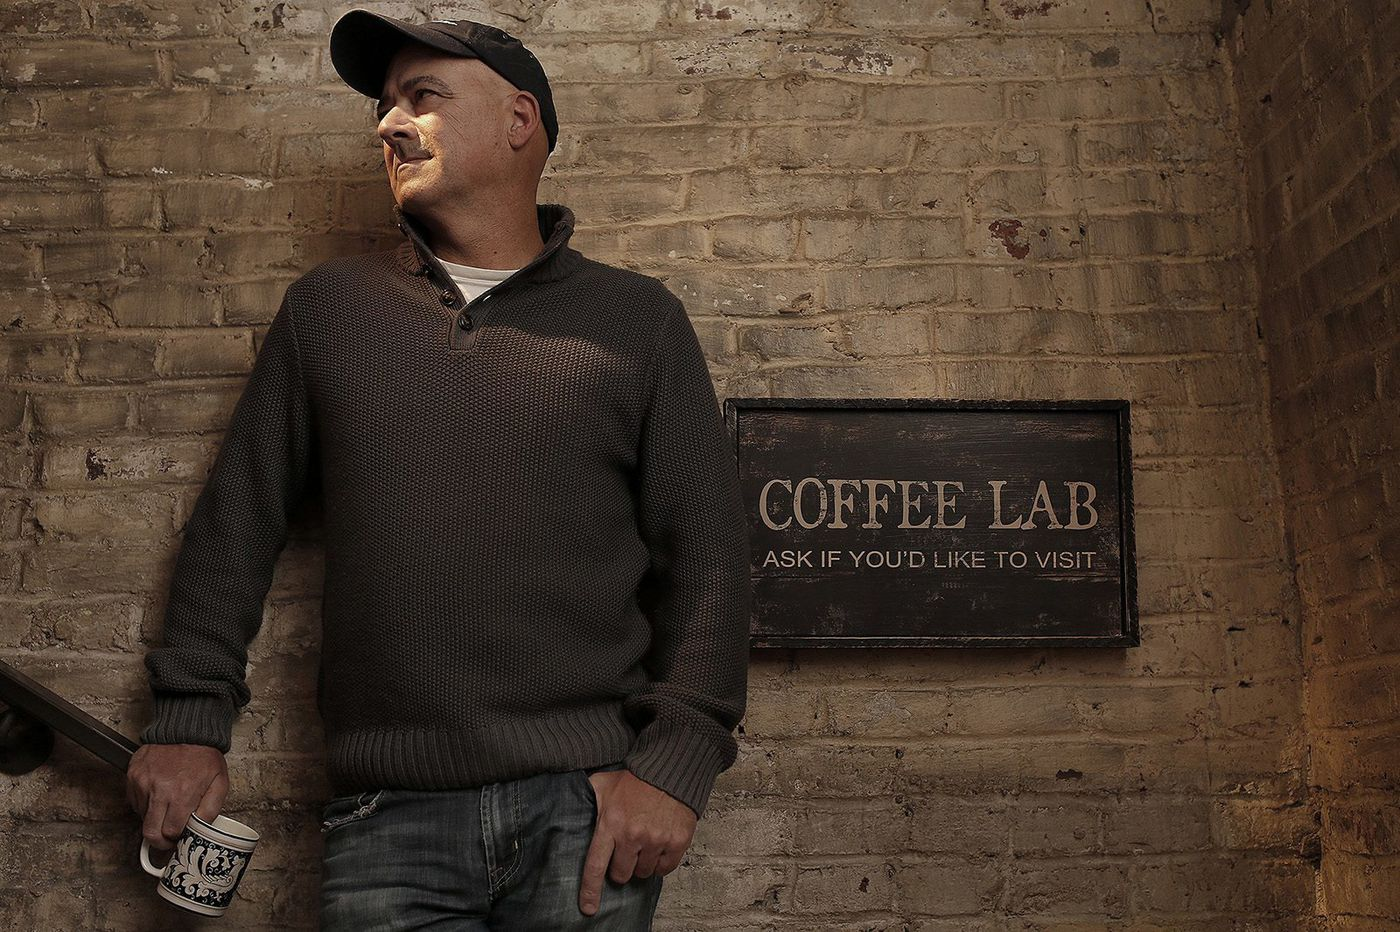 La Colombe's CEO styled himself as Philly's working-class hero. Now it's time we championed the actual workers.   Mike Newall